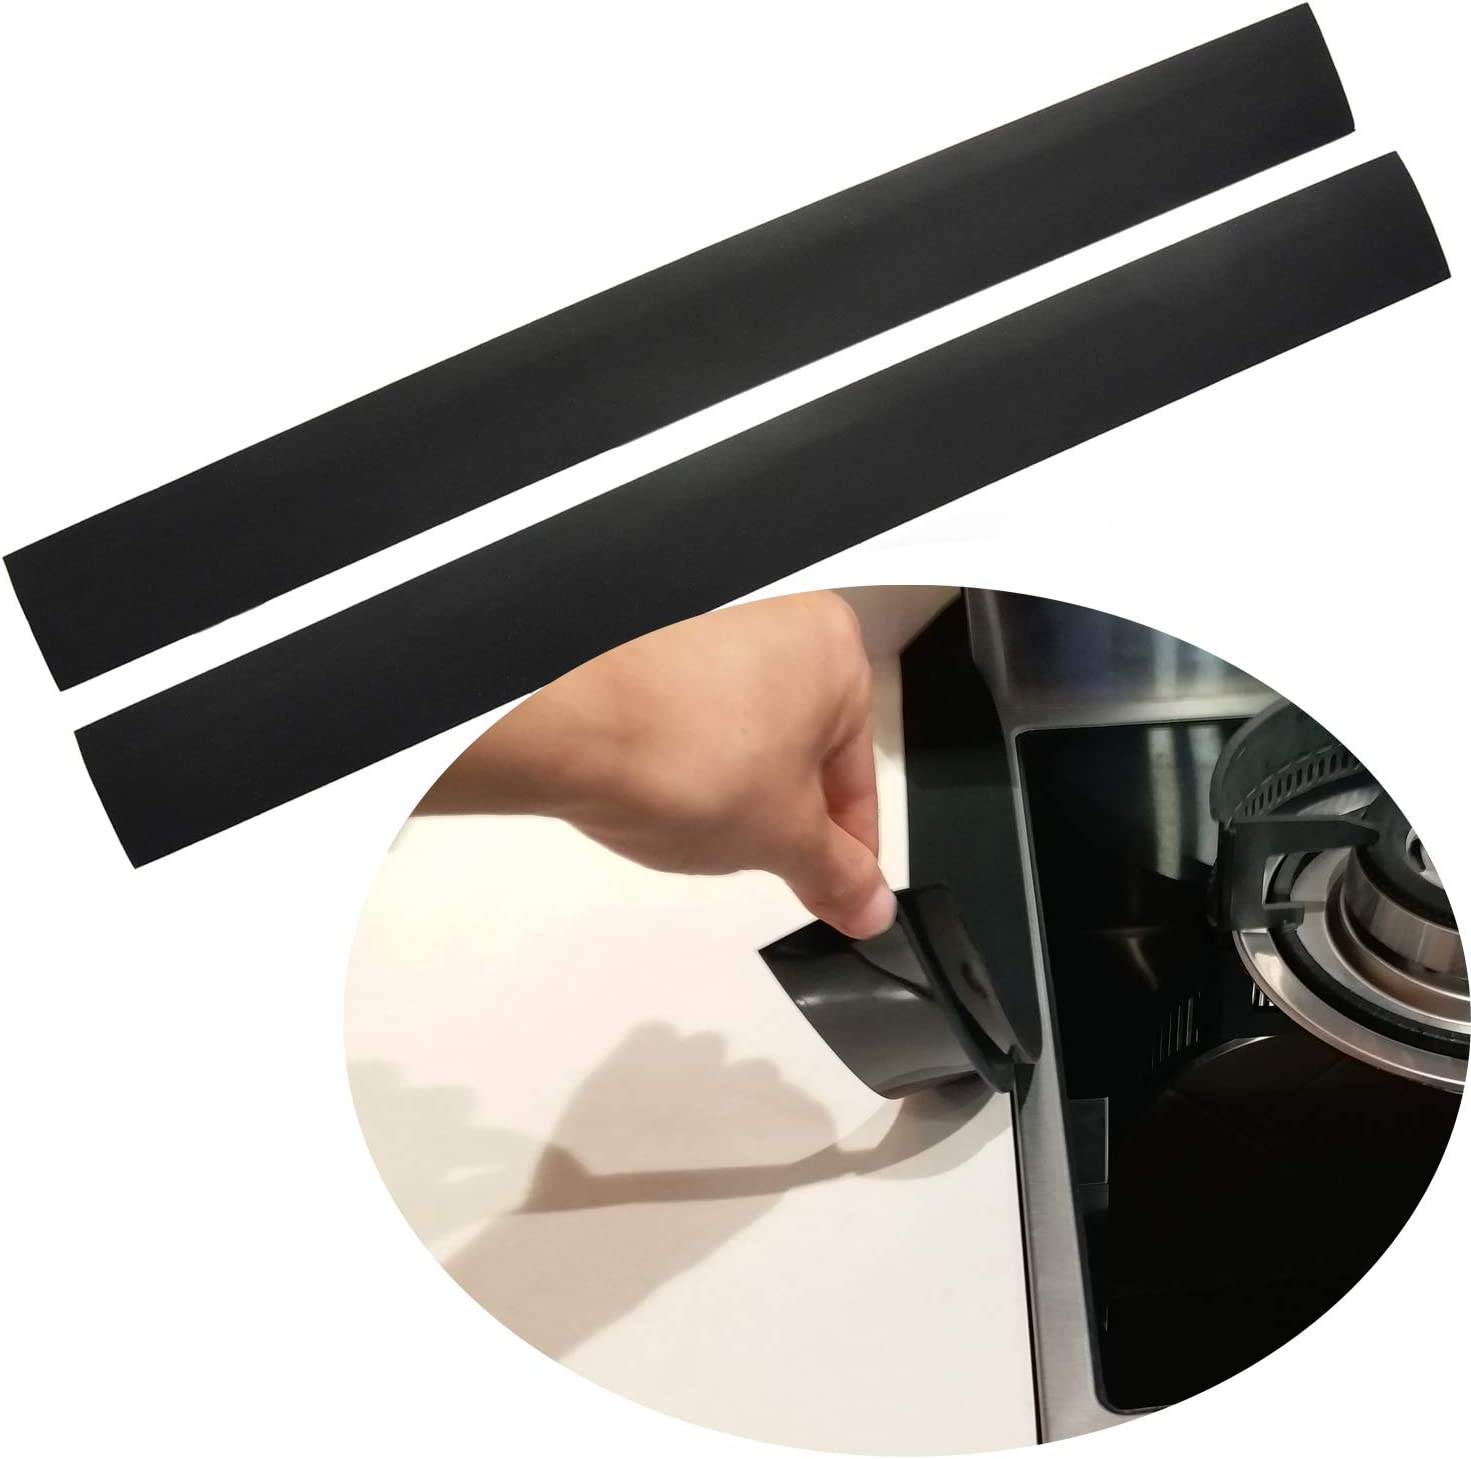 Silicone Stove Counter Gap Cover Kitchen Now Fashion on sale Filler K by